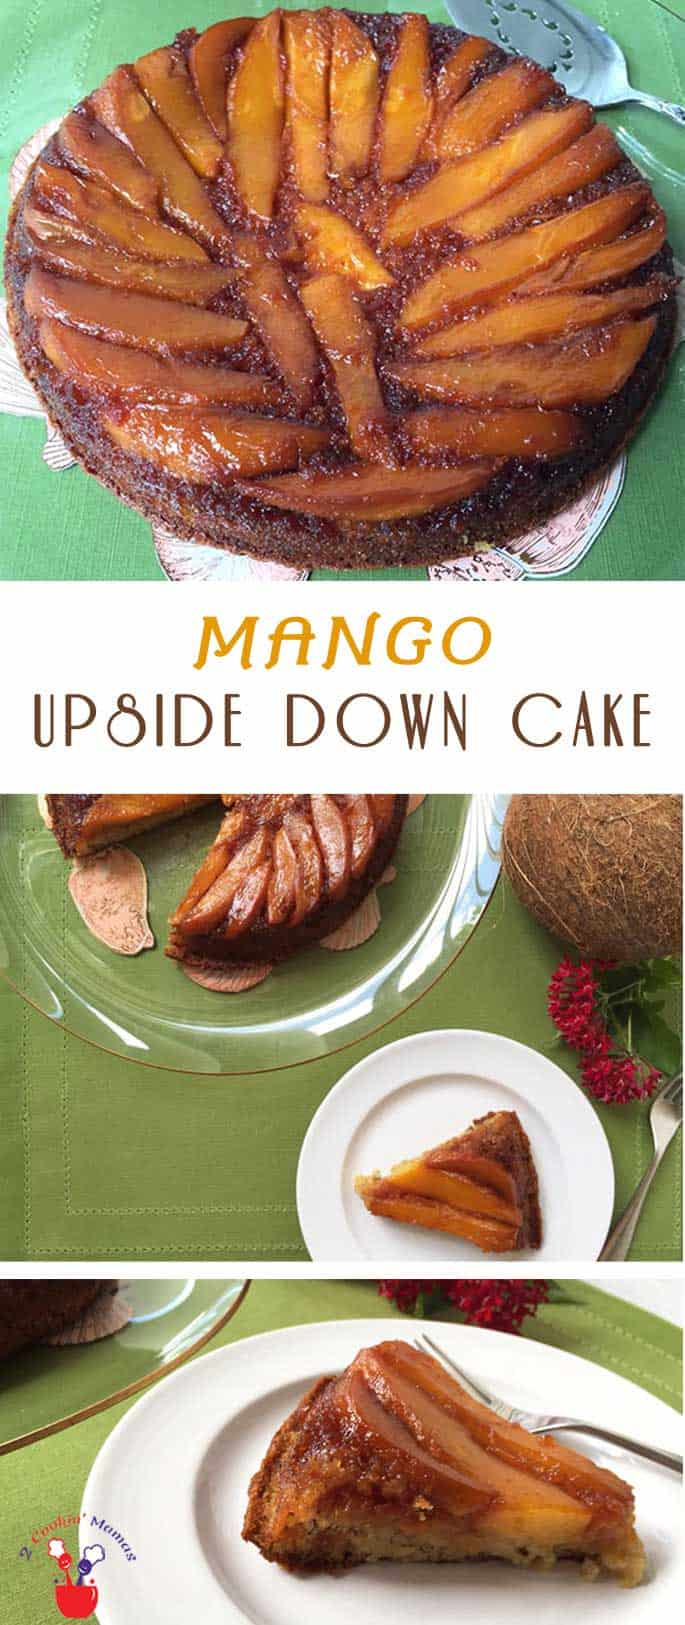 Mango Upside Down Cake | 2 Cookin Mamas What's better than fresh mango? Fresh mango atop a moist & delicious rum cake! Impress guests with this easy & beautiful Mango Upside Down Cake recipe.